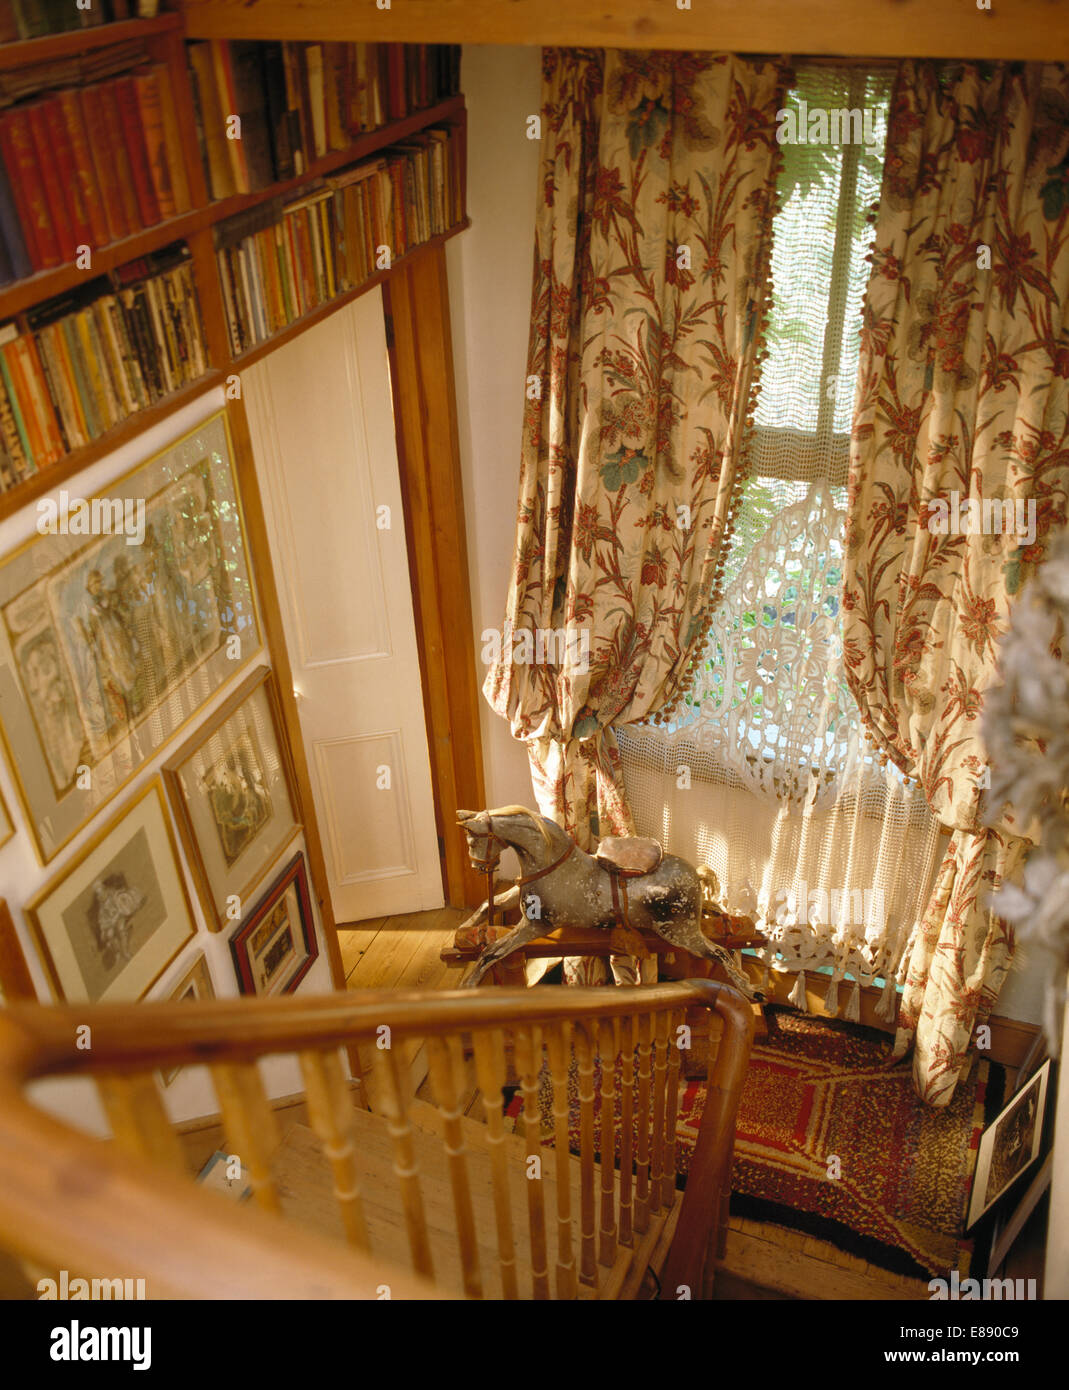 Looking Down Staircase To Floral Curtains On Window Above Rocking